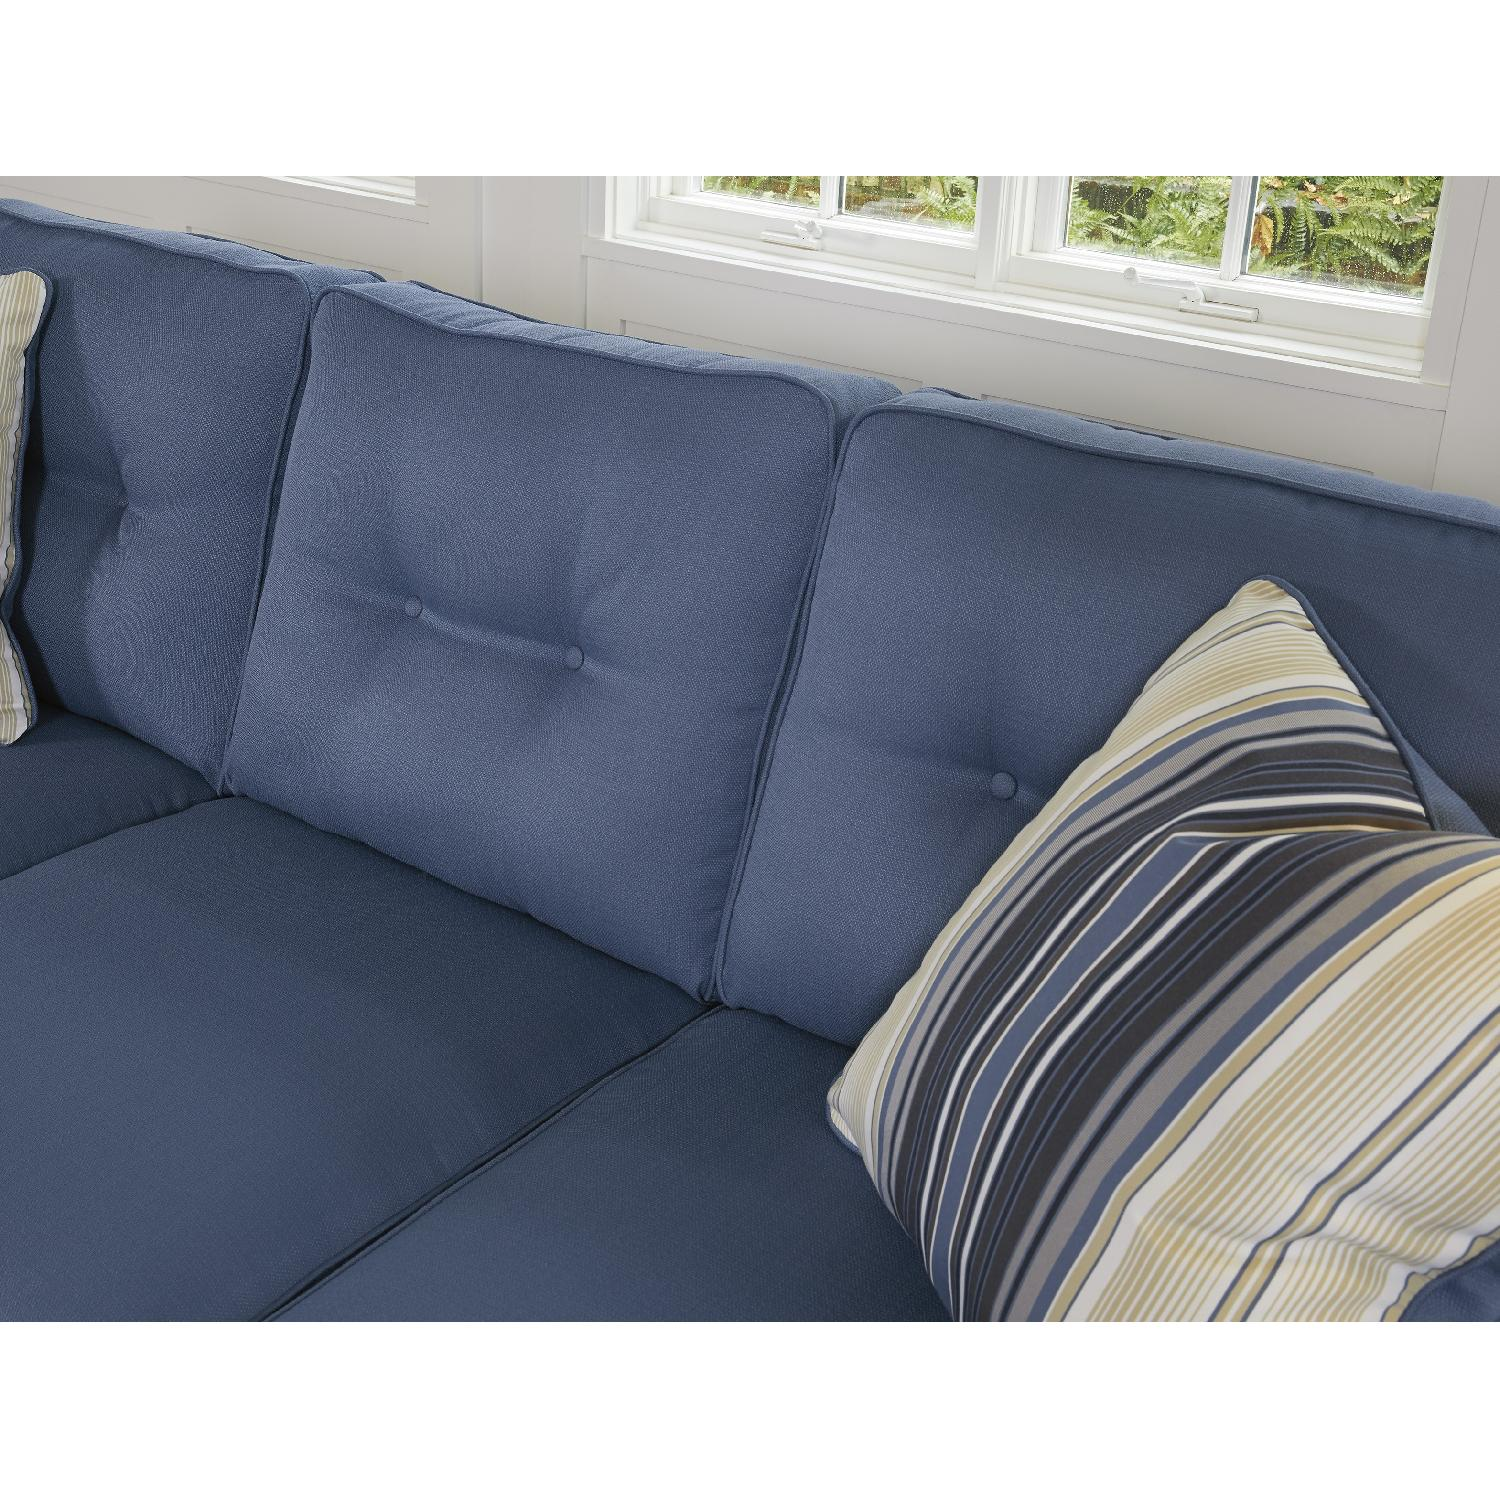 ... Ashleyu0027s Aldie Nuvella Contemporary Sectional Sofa w/ Chaise-3 ...  sc 1 st  AptDeco : blue sectional sofa with chaise - Sectionals, Sofas & Couches